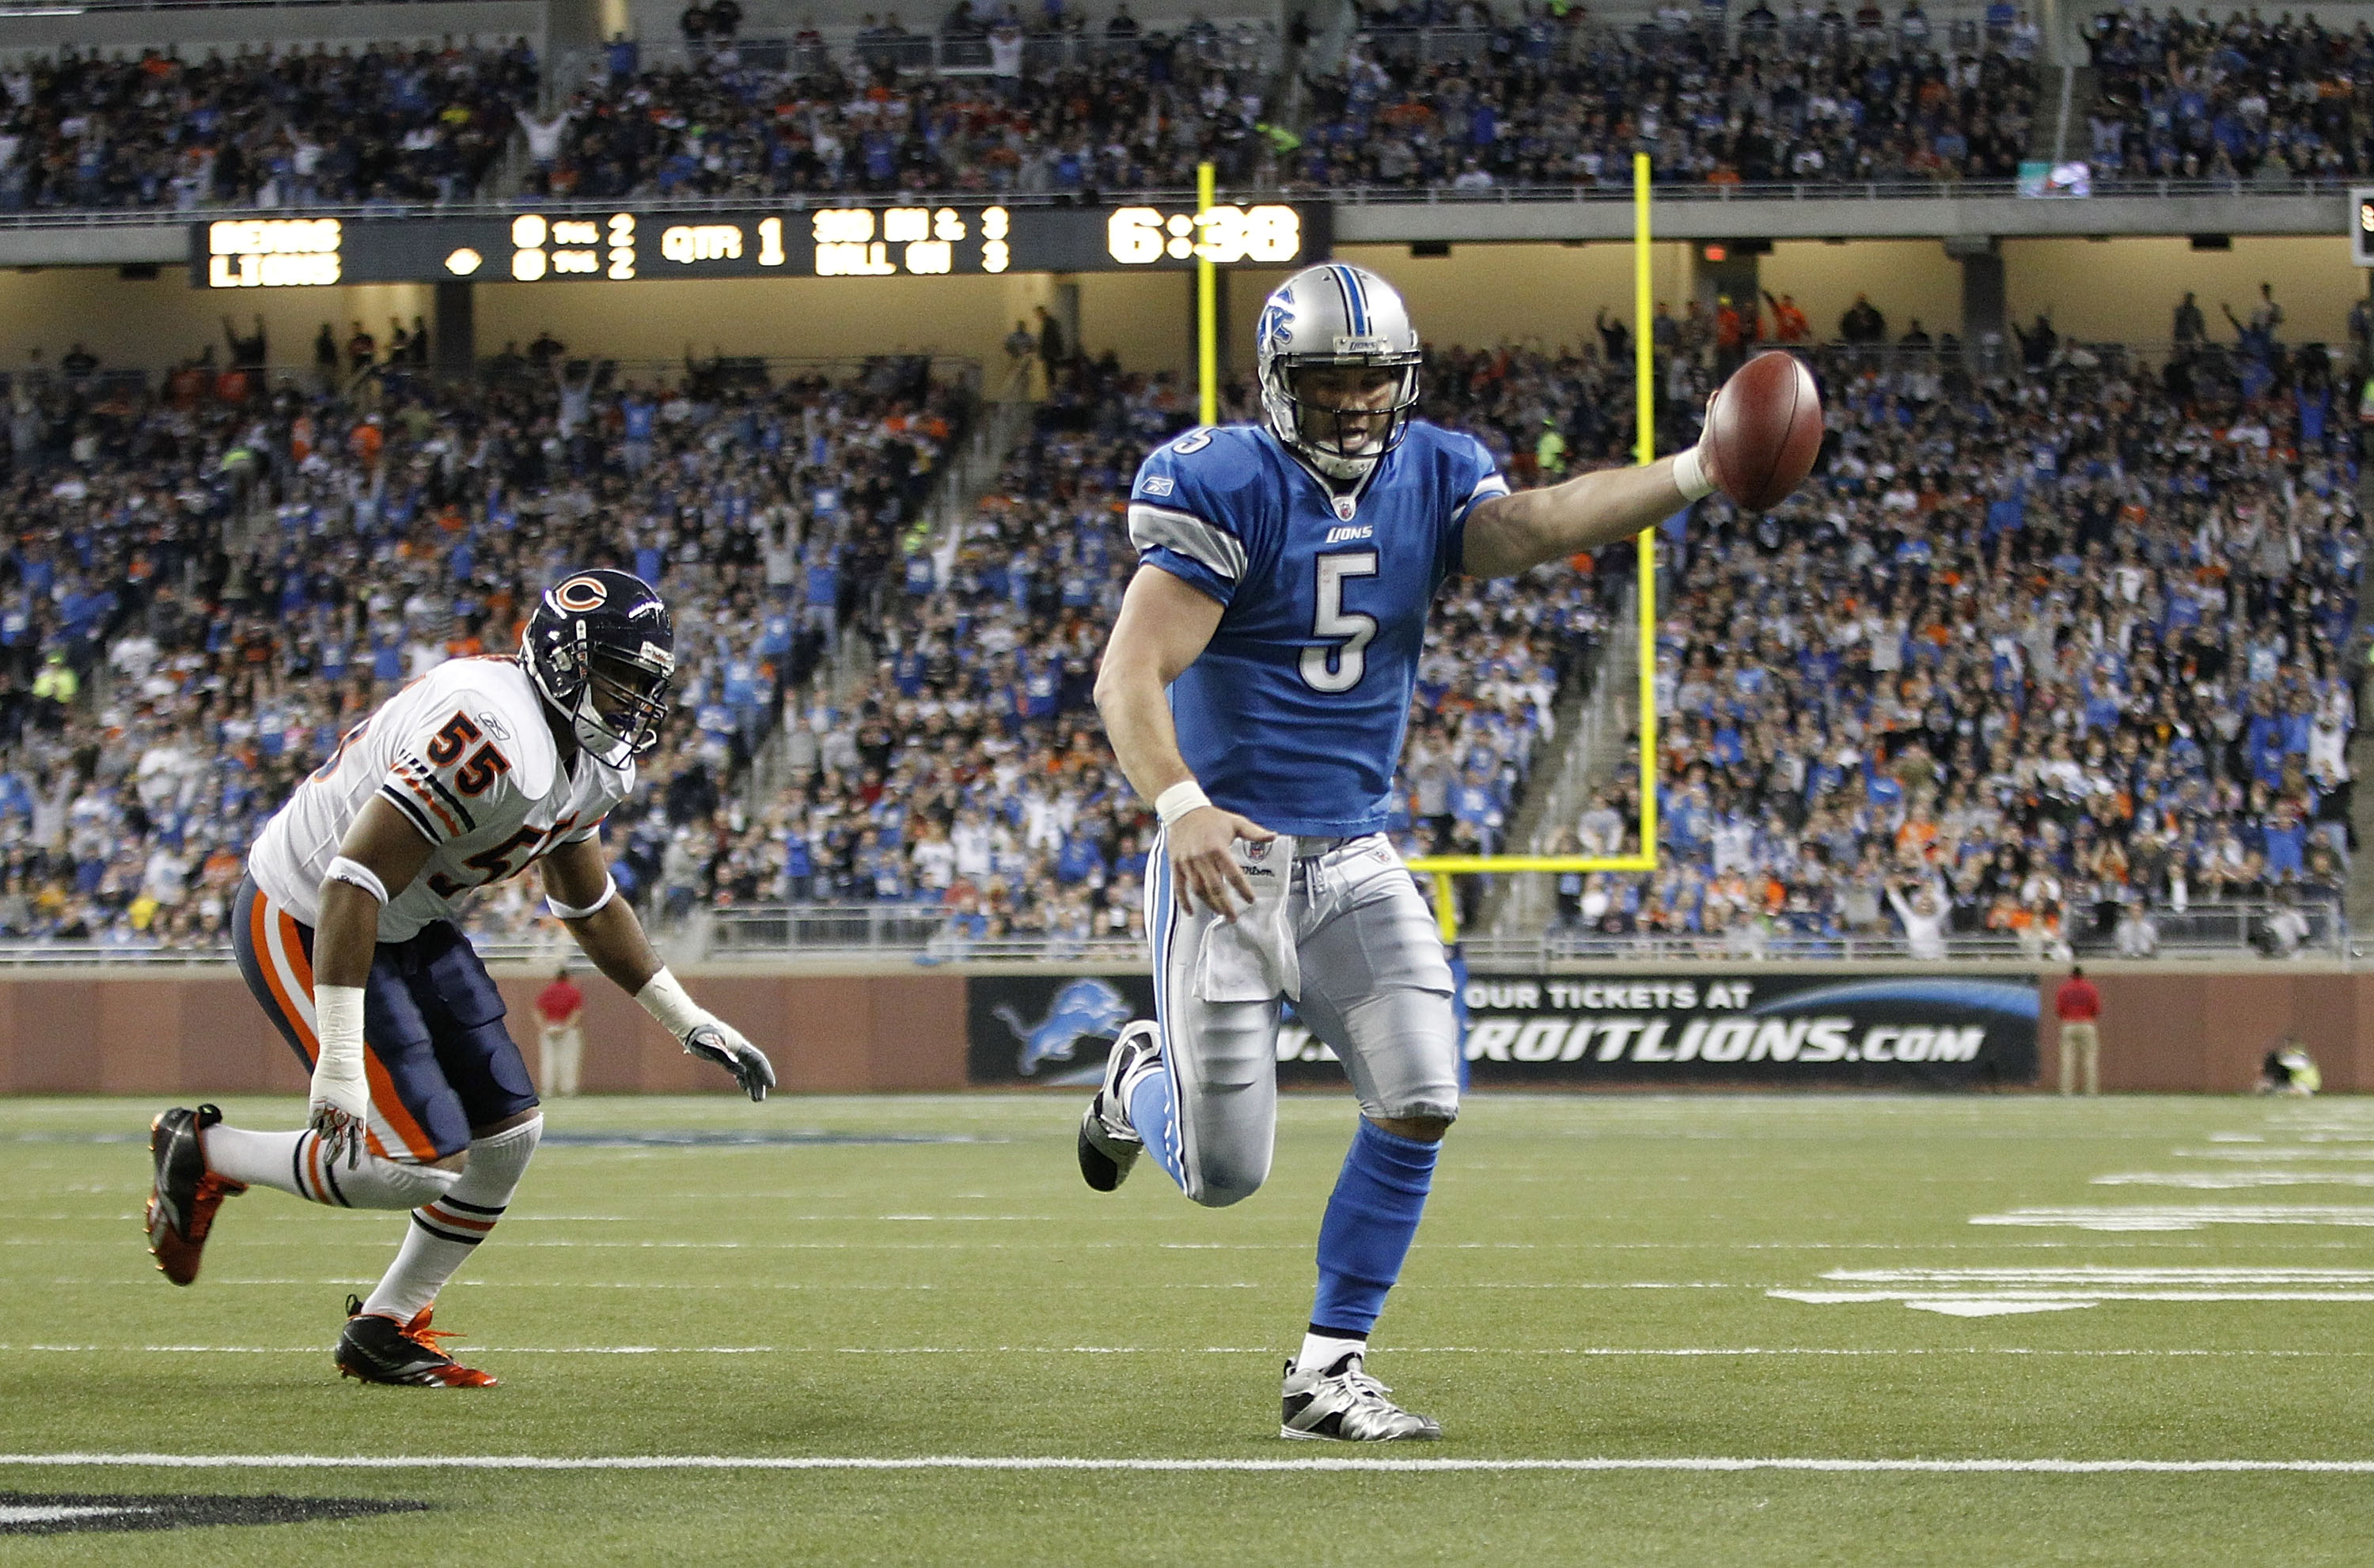 DETROIT - DECEMBER 05: Drew Stanton #5 of the Detroit Lions runs three yards for a first quarter touchdown as Lance Briggs #55 of the Chicago Bears gives chase during the game at Ford Field on December 5, 2010 in Detroit, Michigan.  (Photo by Leon Halip/G